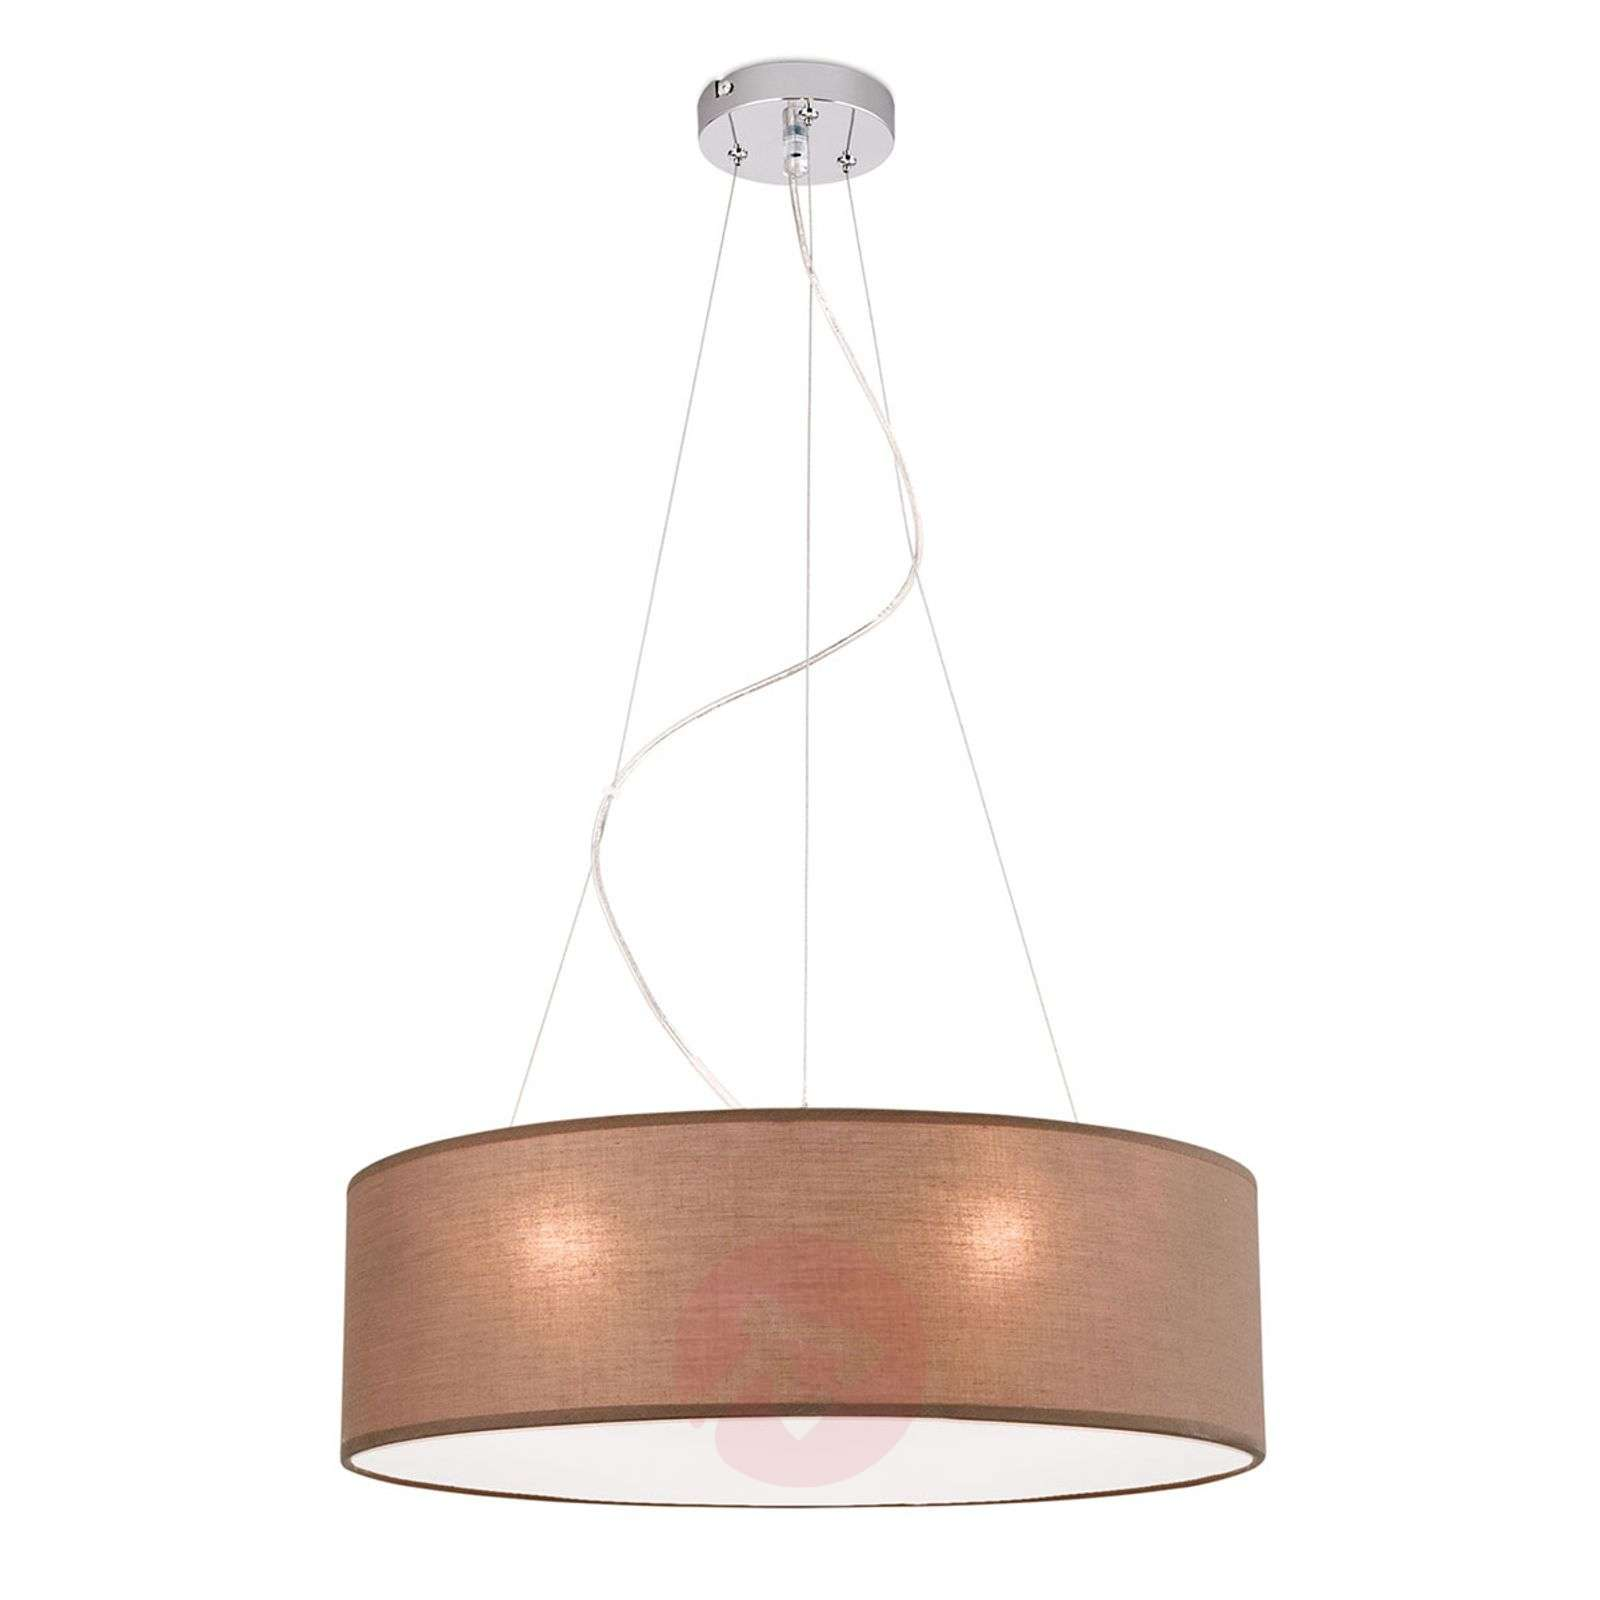 Suspension marron Ufo avec abat-jour en lin-7255353-01